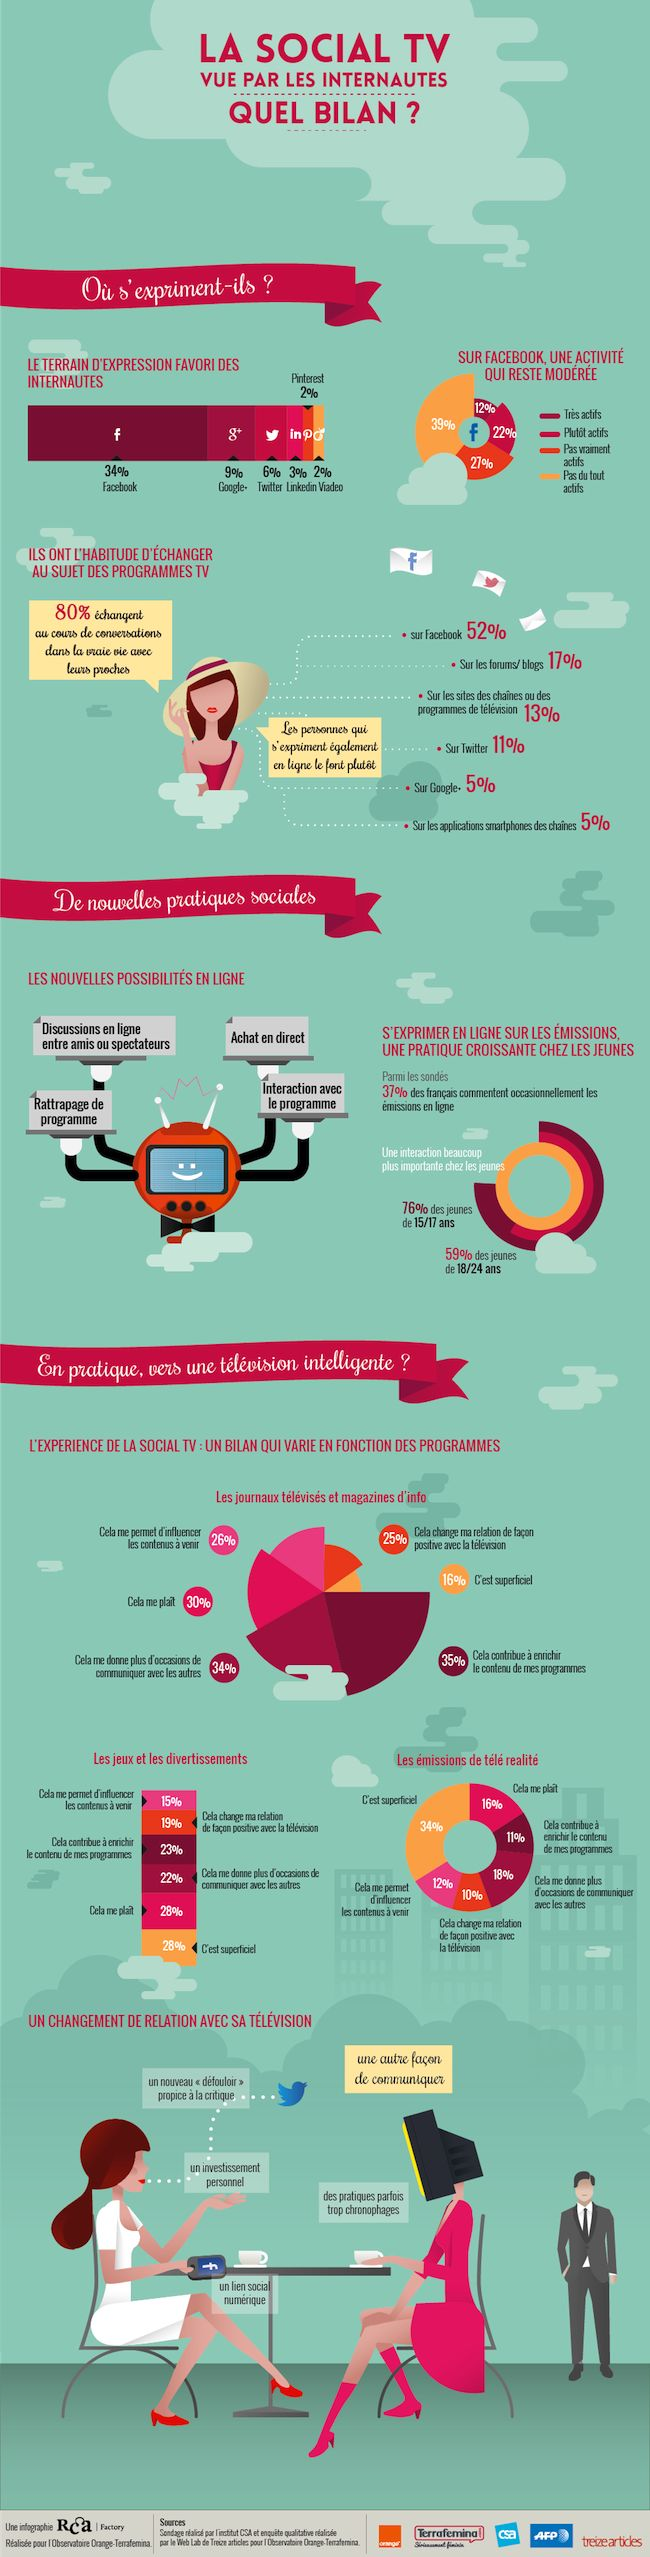 #SocialTV in France : 37% of French people occasionally interact with TV according to the CSA - Orange - Terrafemina #oot13 => http://www.french-socialtv.com/